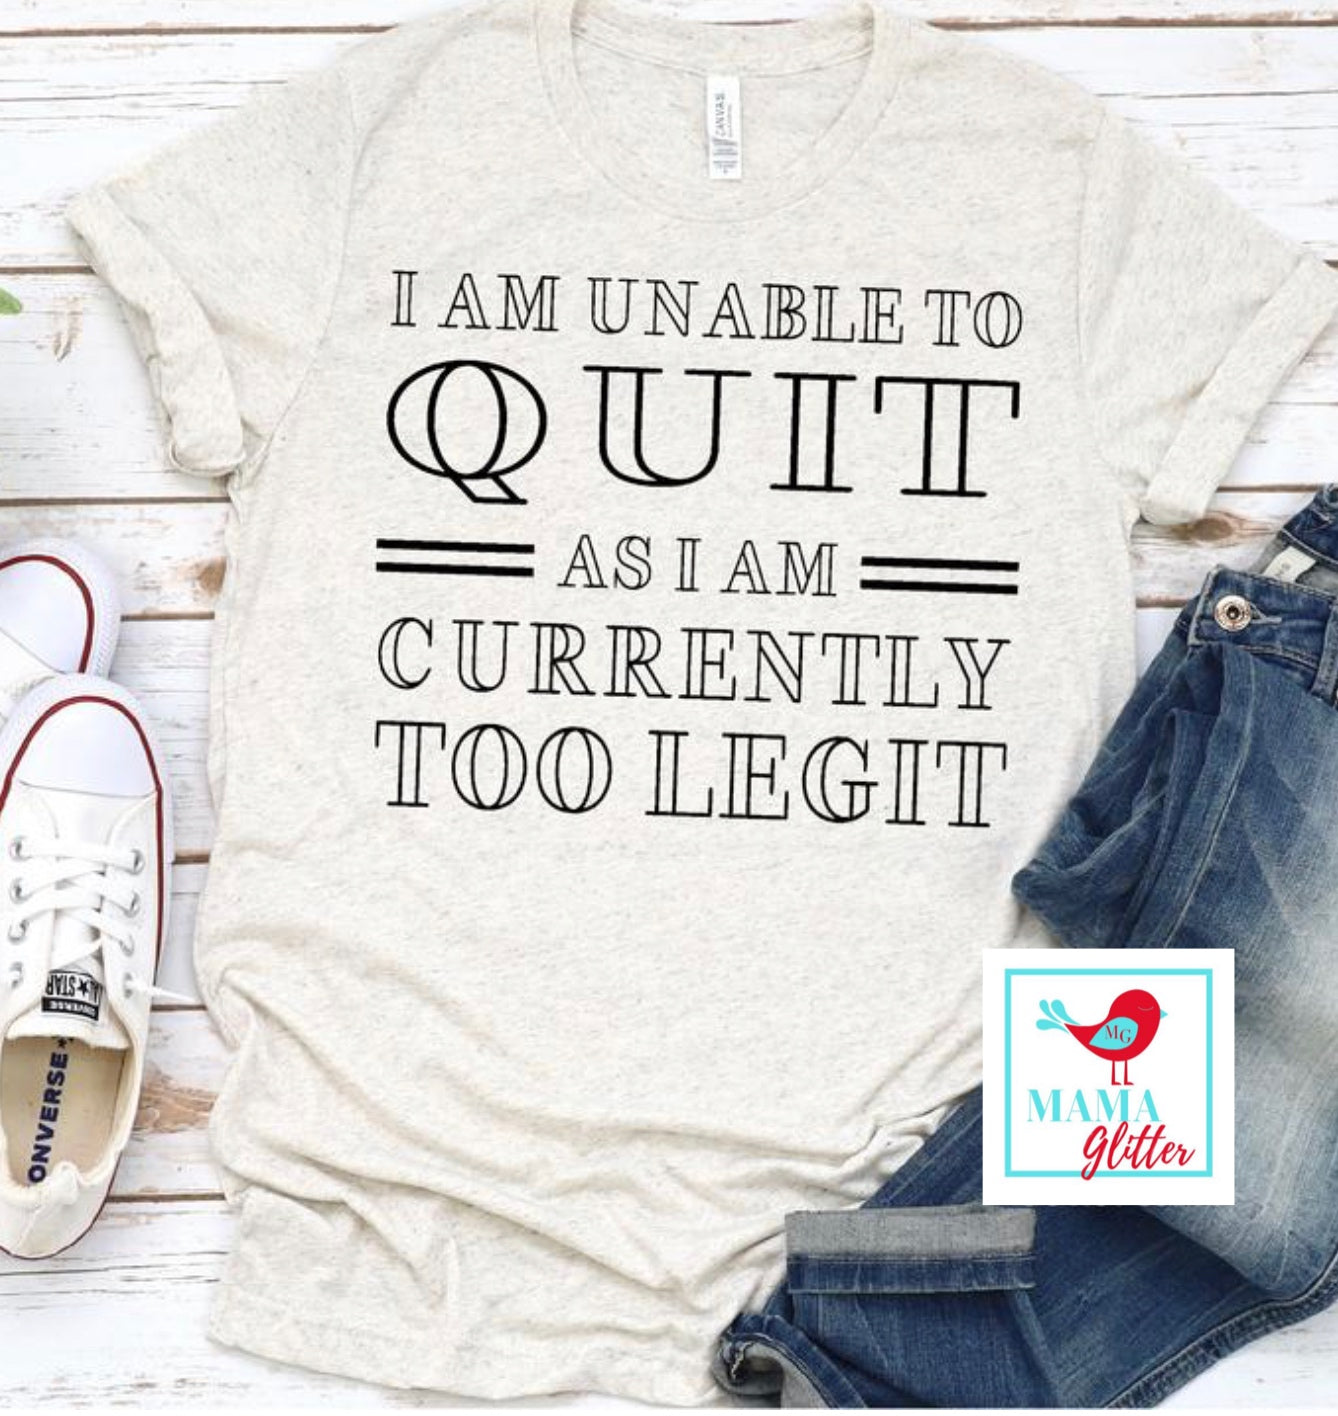 I Am Unable To Quit As I Am Currently Too Legit - Print